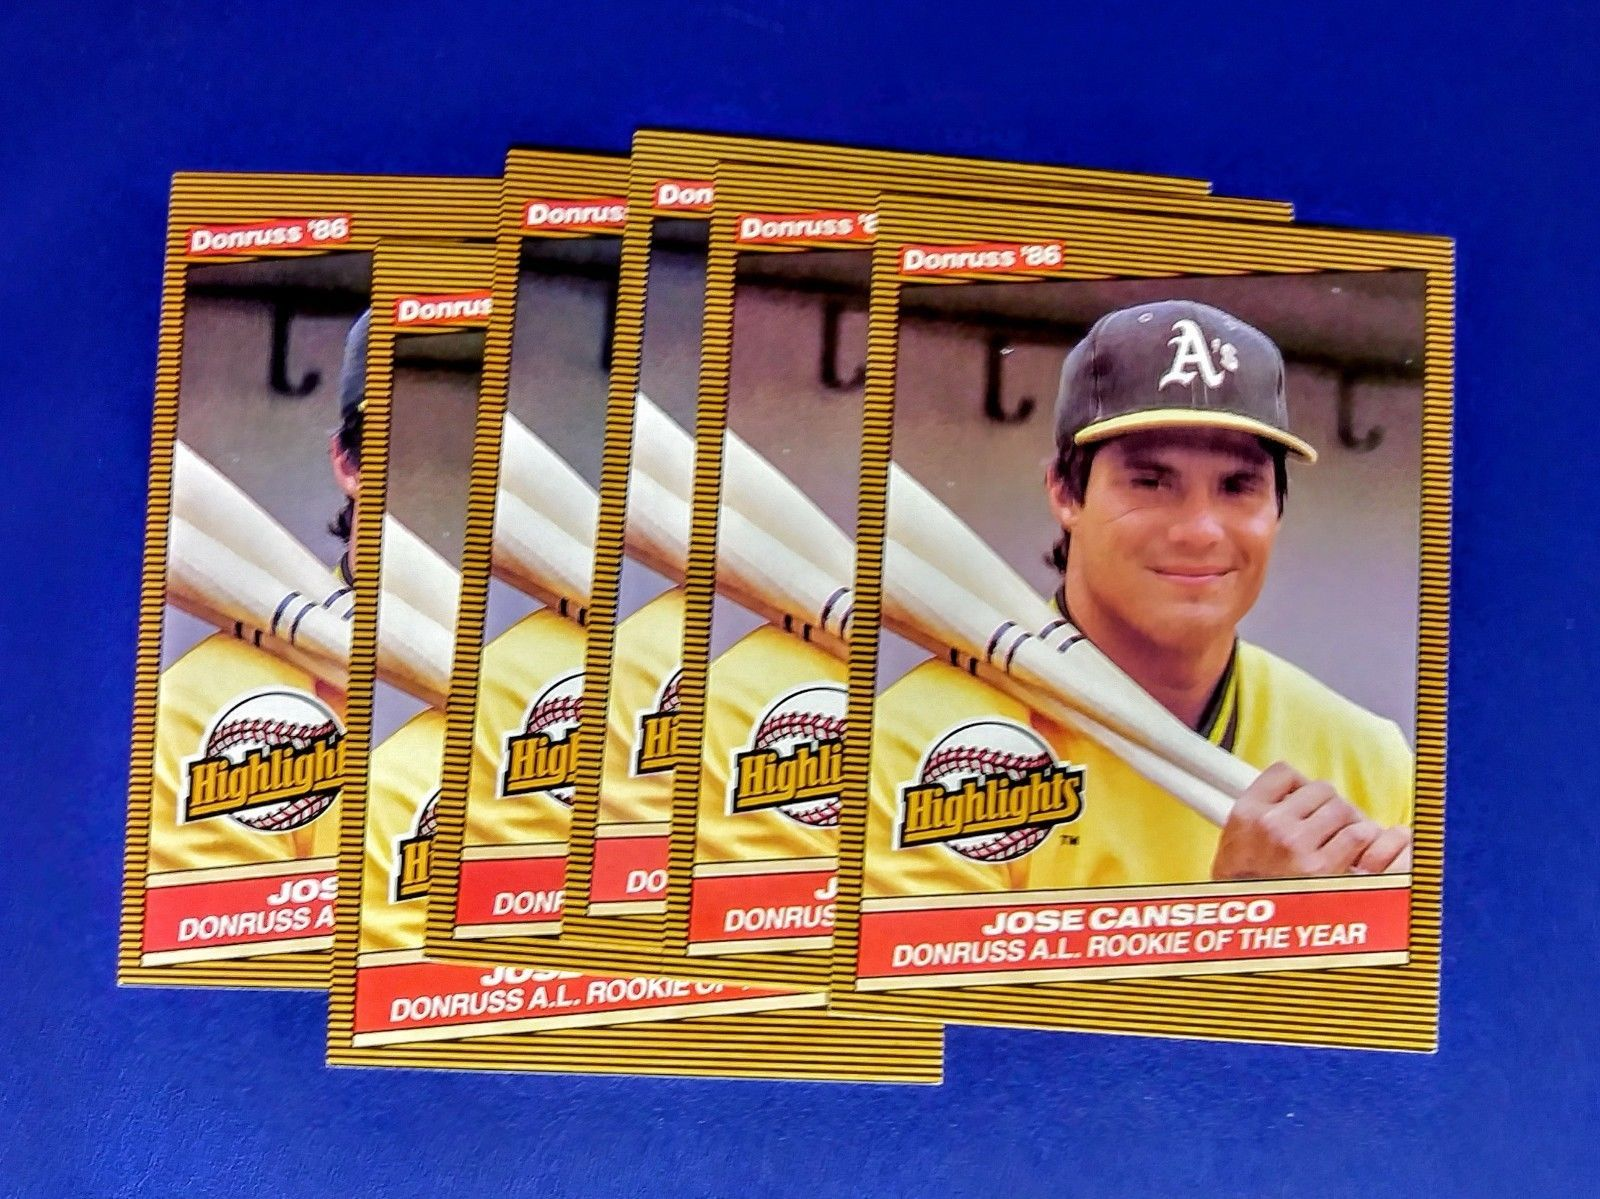 6 Near Mint 1986 Leaf Inc Donruss Jose Canseco Rookie Baseball